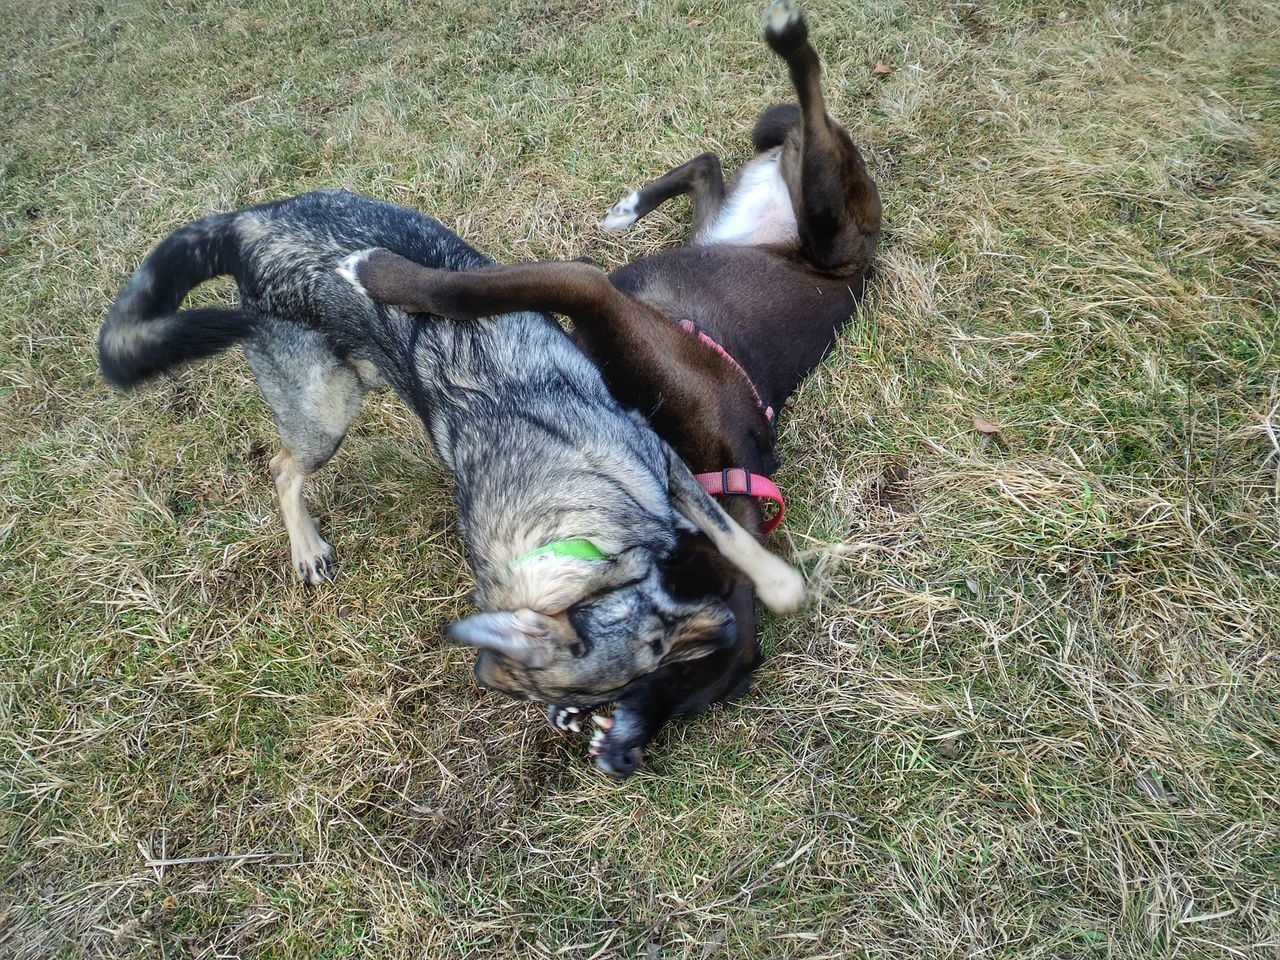 Looking Dangerously Two Playing Dogs Animal Friendship Dogs Of EyeEm Animal Themes Dogs Domestic Animals Pets Outdoors No People Nature High Angle View Day Germany🇩🇪 she likes it the hard way 😉 Best Friends Wrestling Match